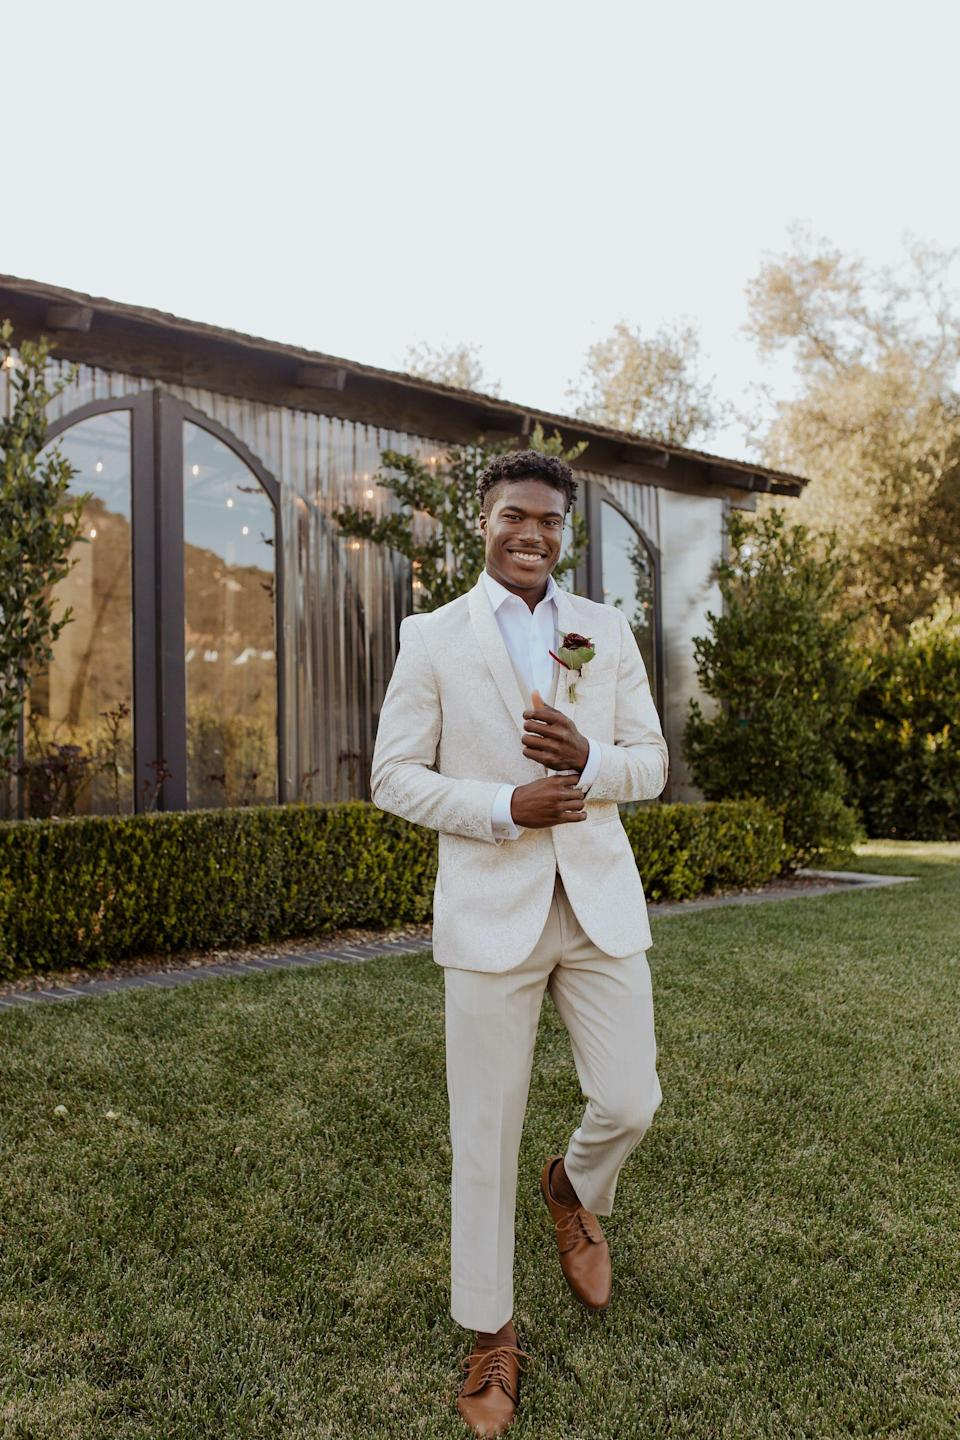 A groom stands in a field in front of a building in a cream suit.